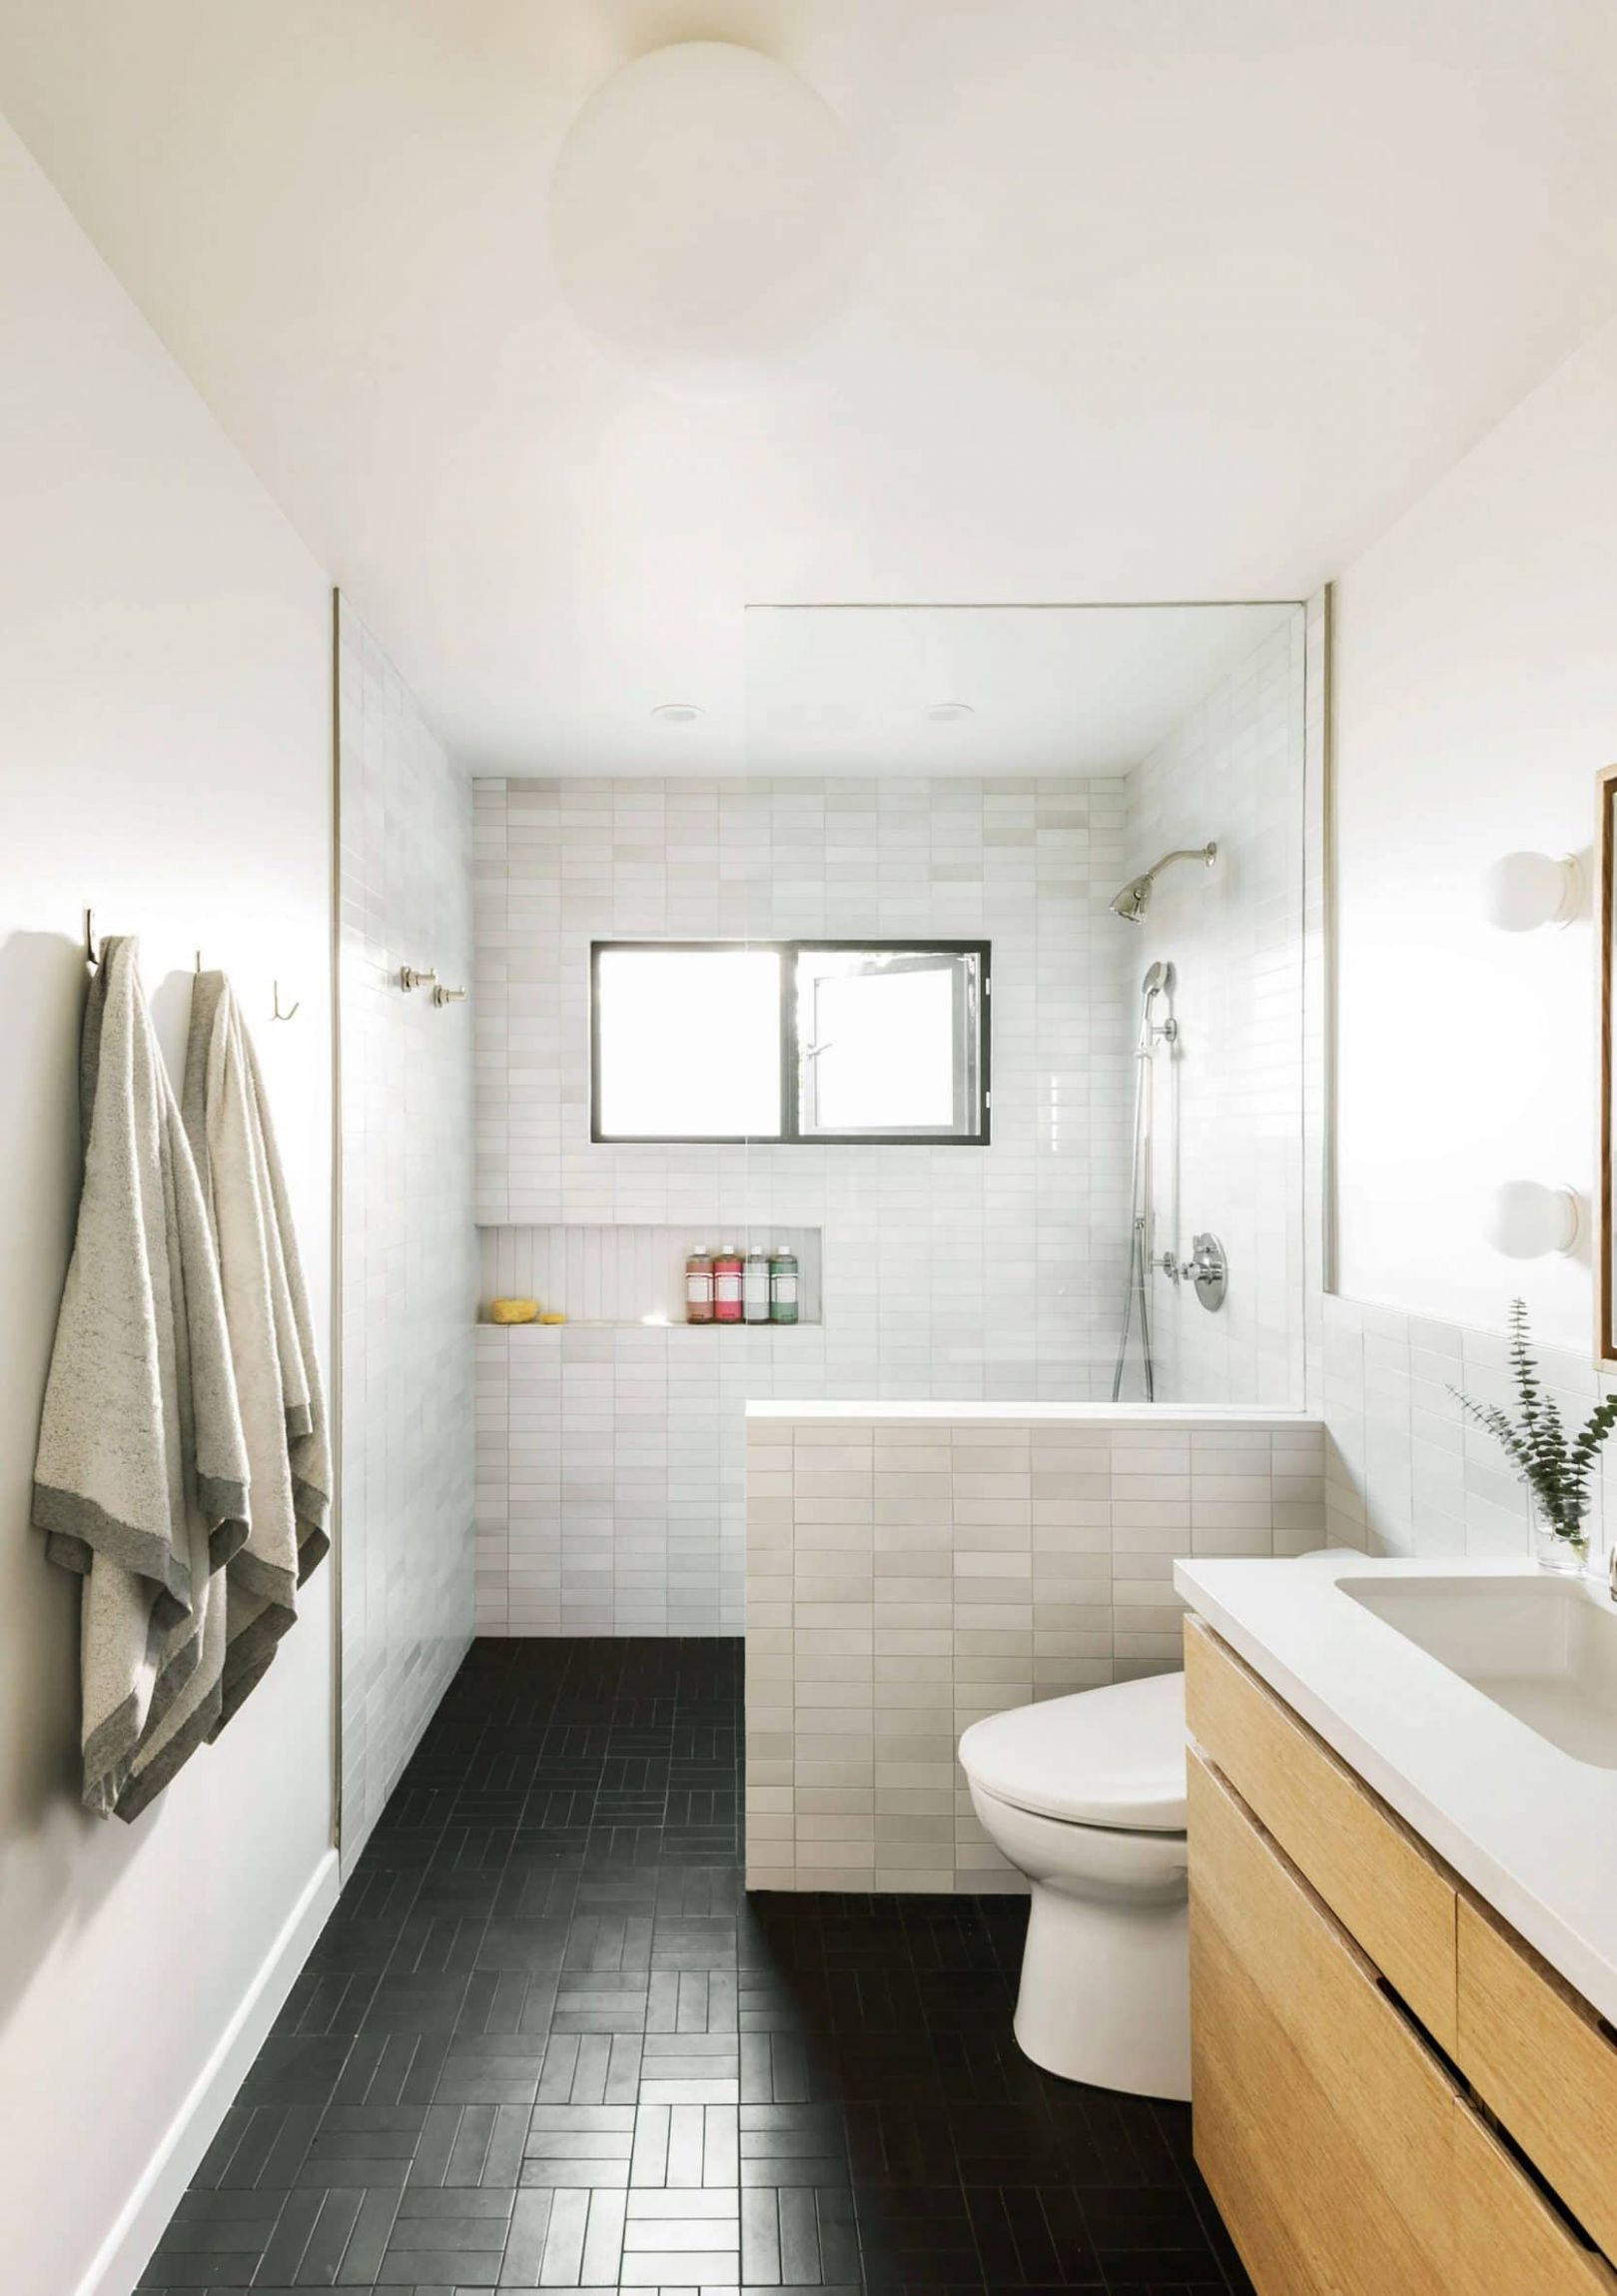 11 of the Most Exciting Bathroom Design Trends for 11 - bathroom ideas uk 2019